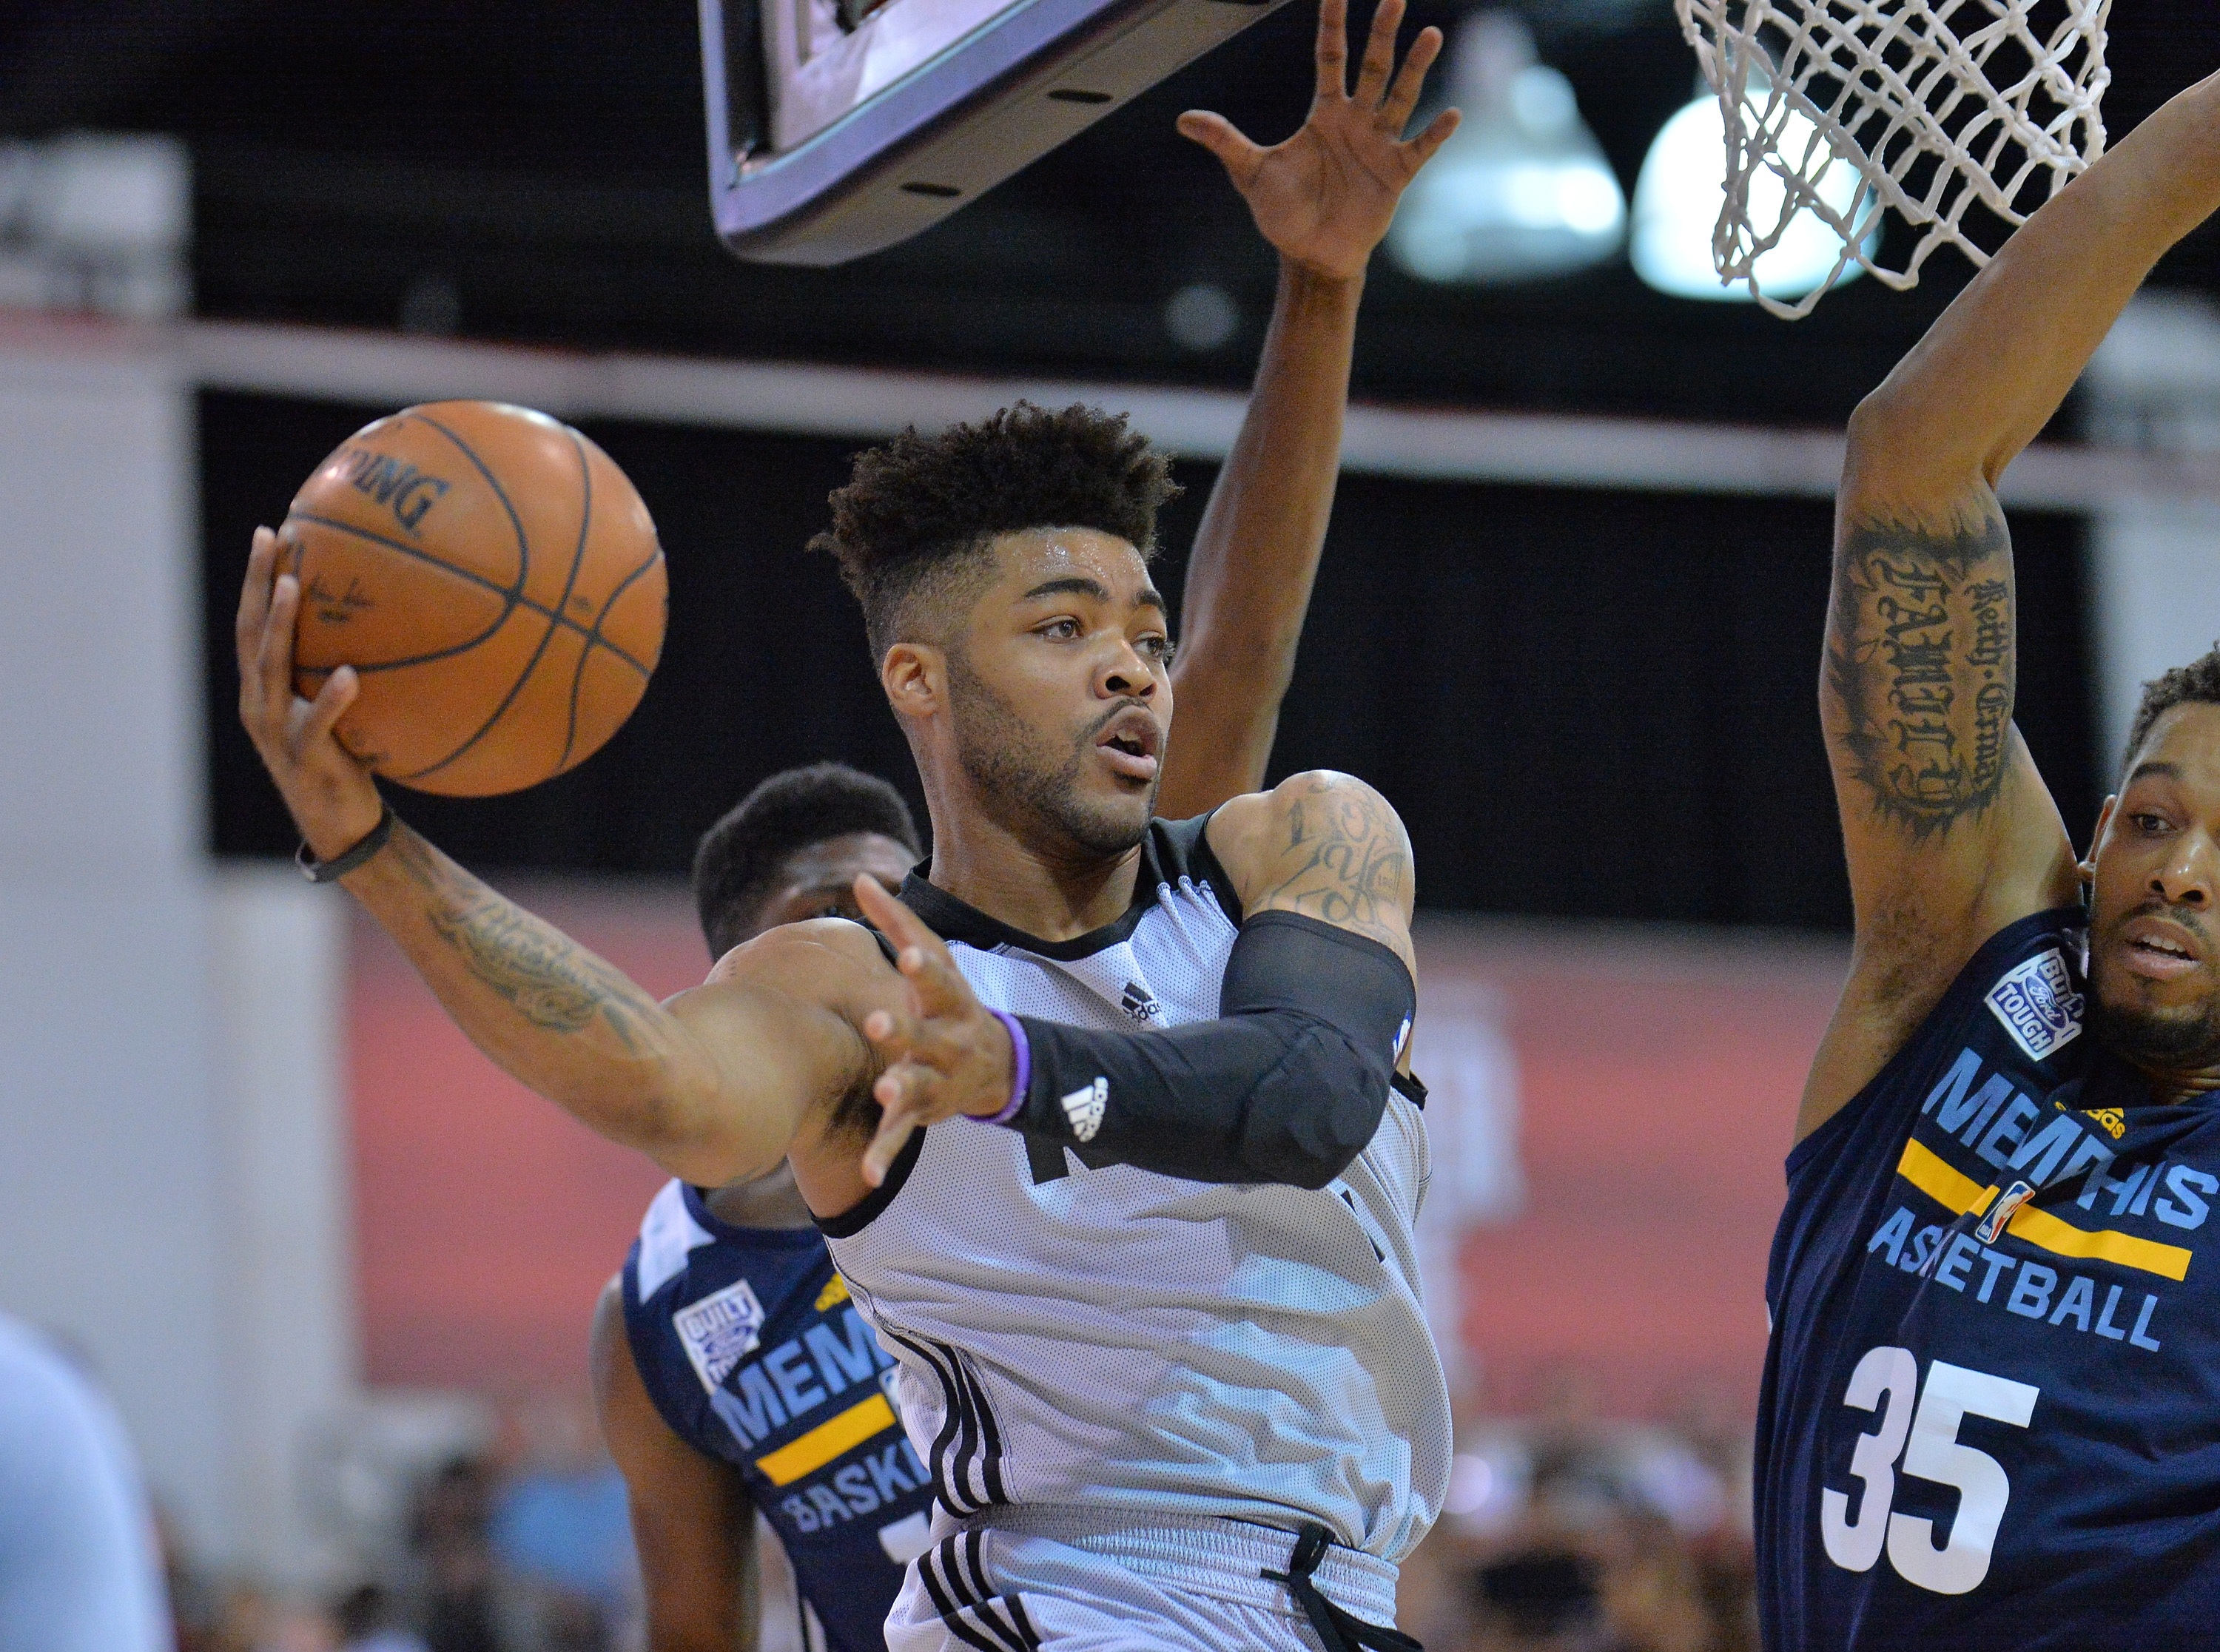 811540372-2017-las-vegas-summer-league-memphis-grizzlies-v-sacramento-kings.jpg